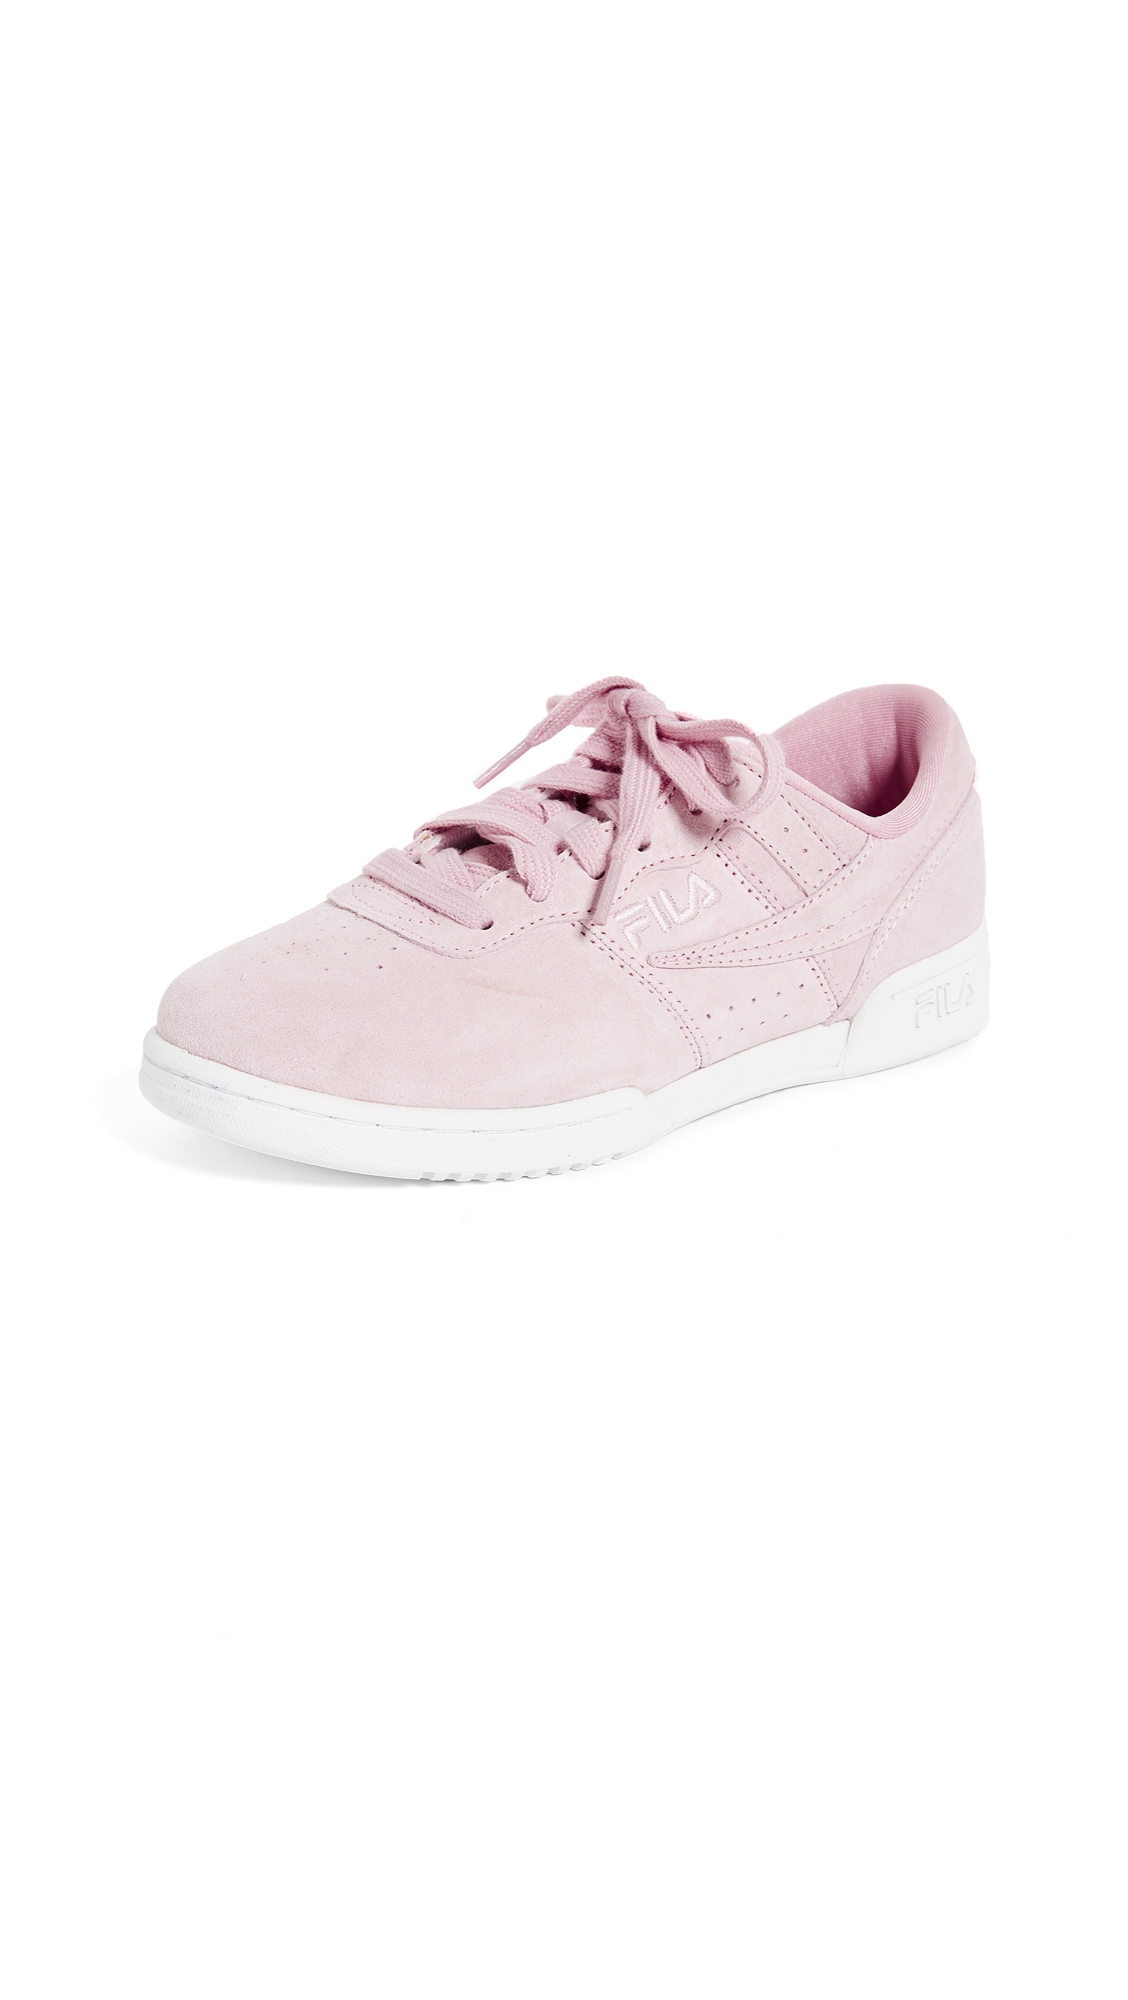 Fila Original Fitness Sneakers - Blushing Bride/White